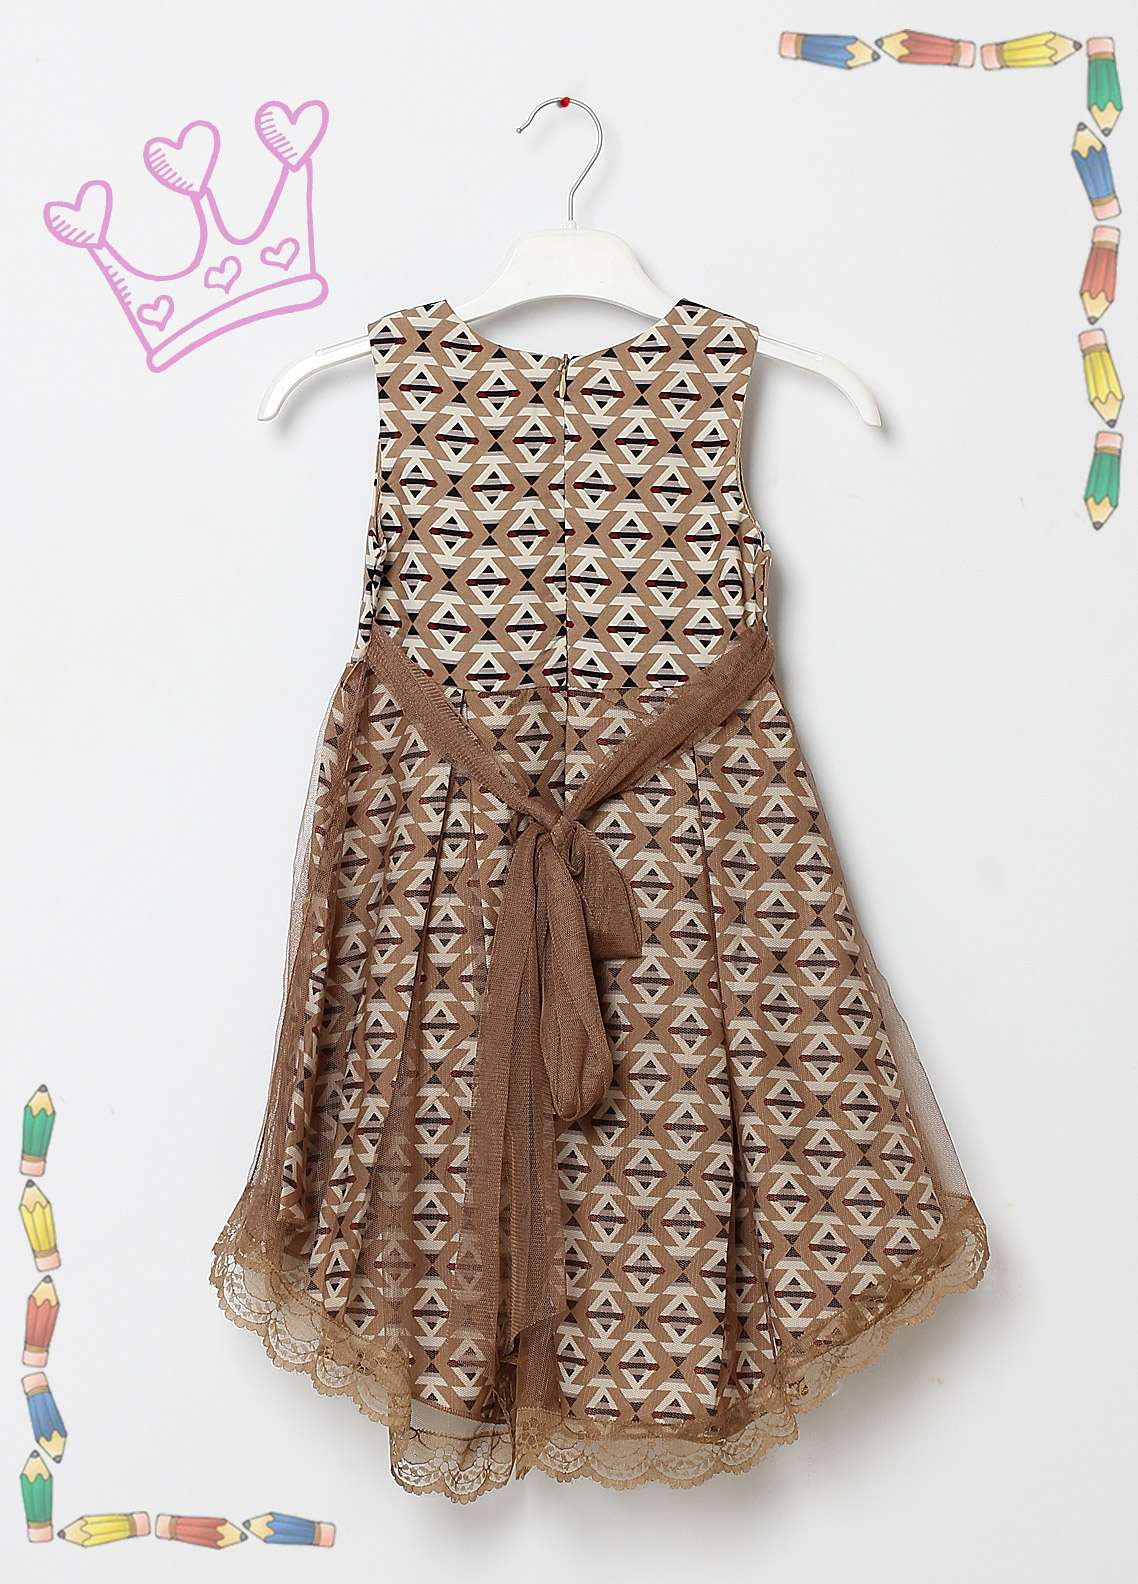 Sanaulla Exclusive Range Cotton Net Fancy Frocks for Girls -  5563 Brown